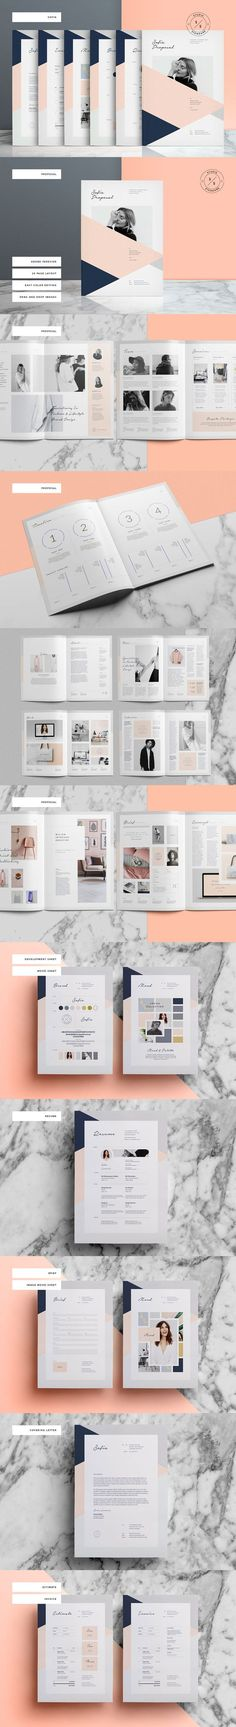 Brochure / Magazine Template on CreativeMarket, A4, A5: